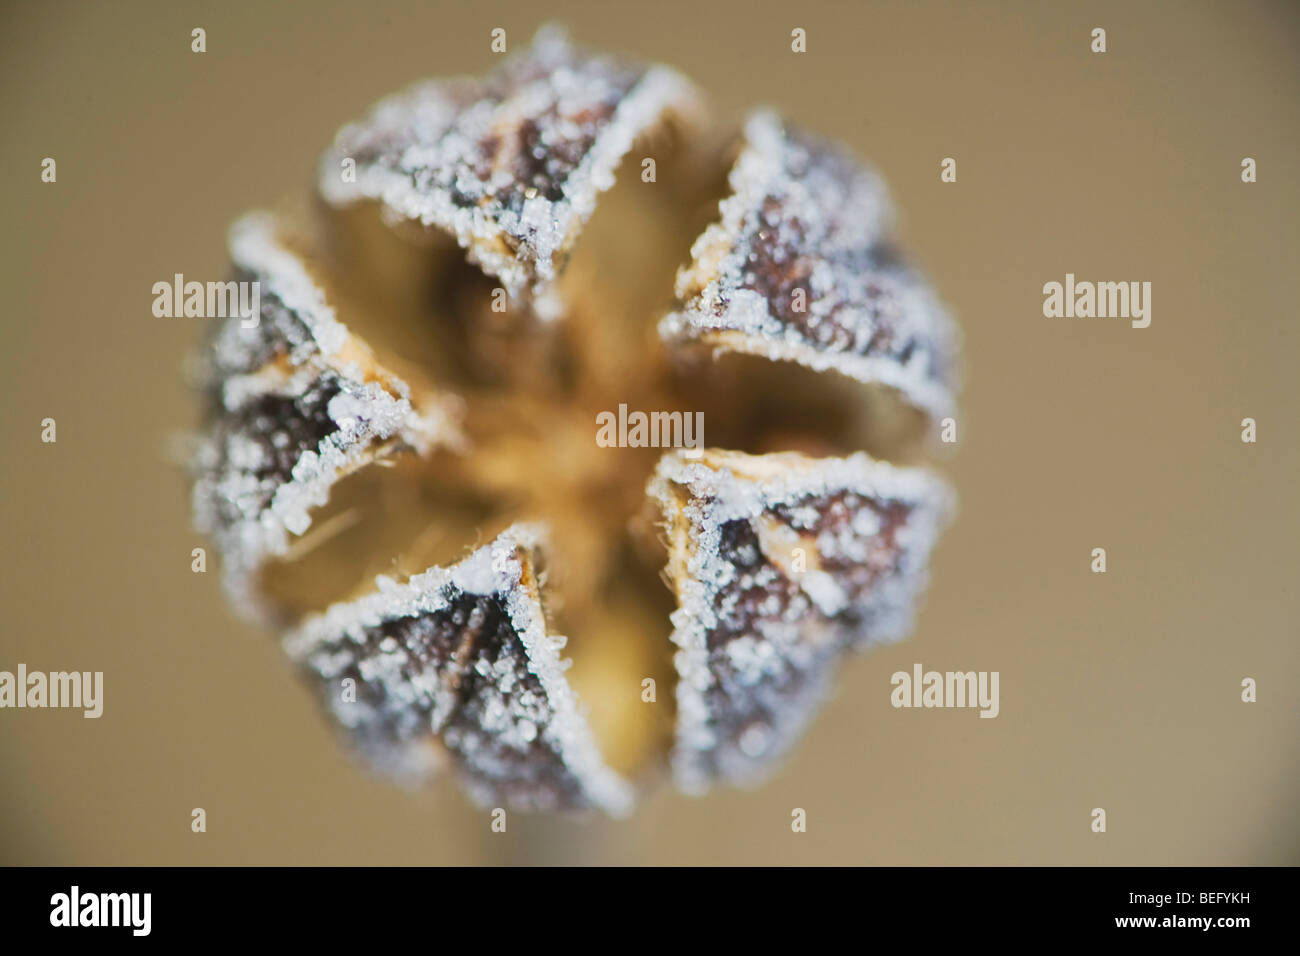 Marsh Mallow (Althaea officinalis), close up of frost covered seed pod, Raleigh, North Carolina, USA Stock Photo